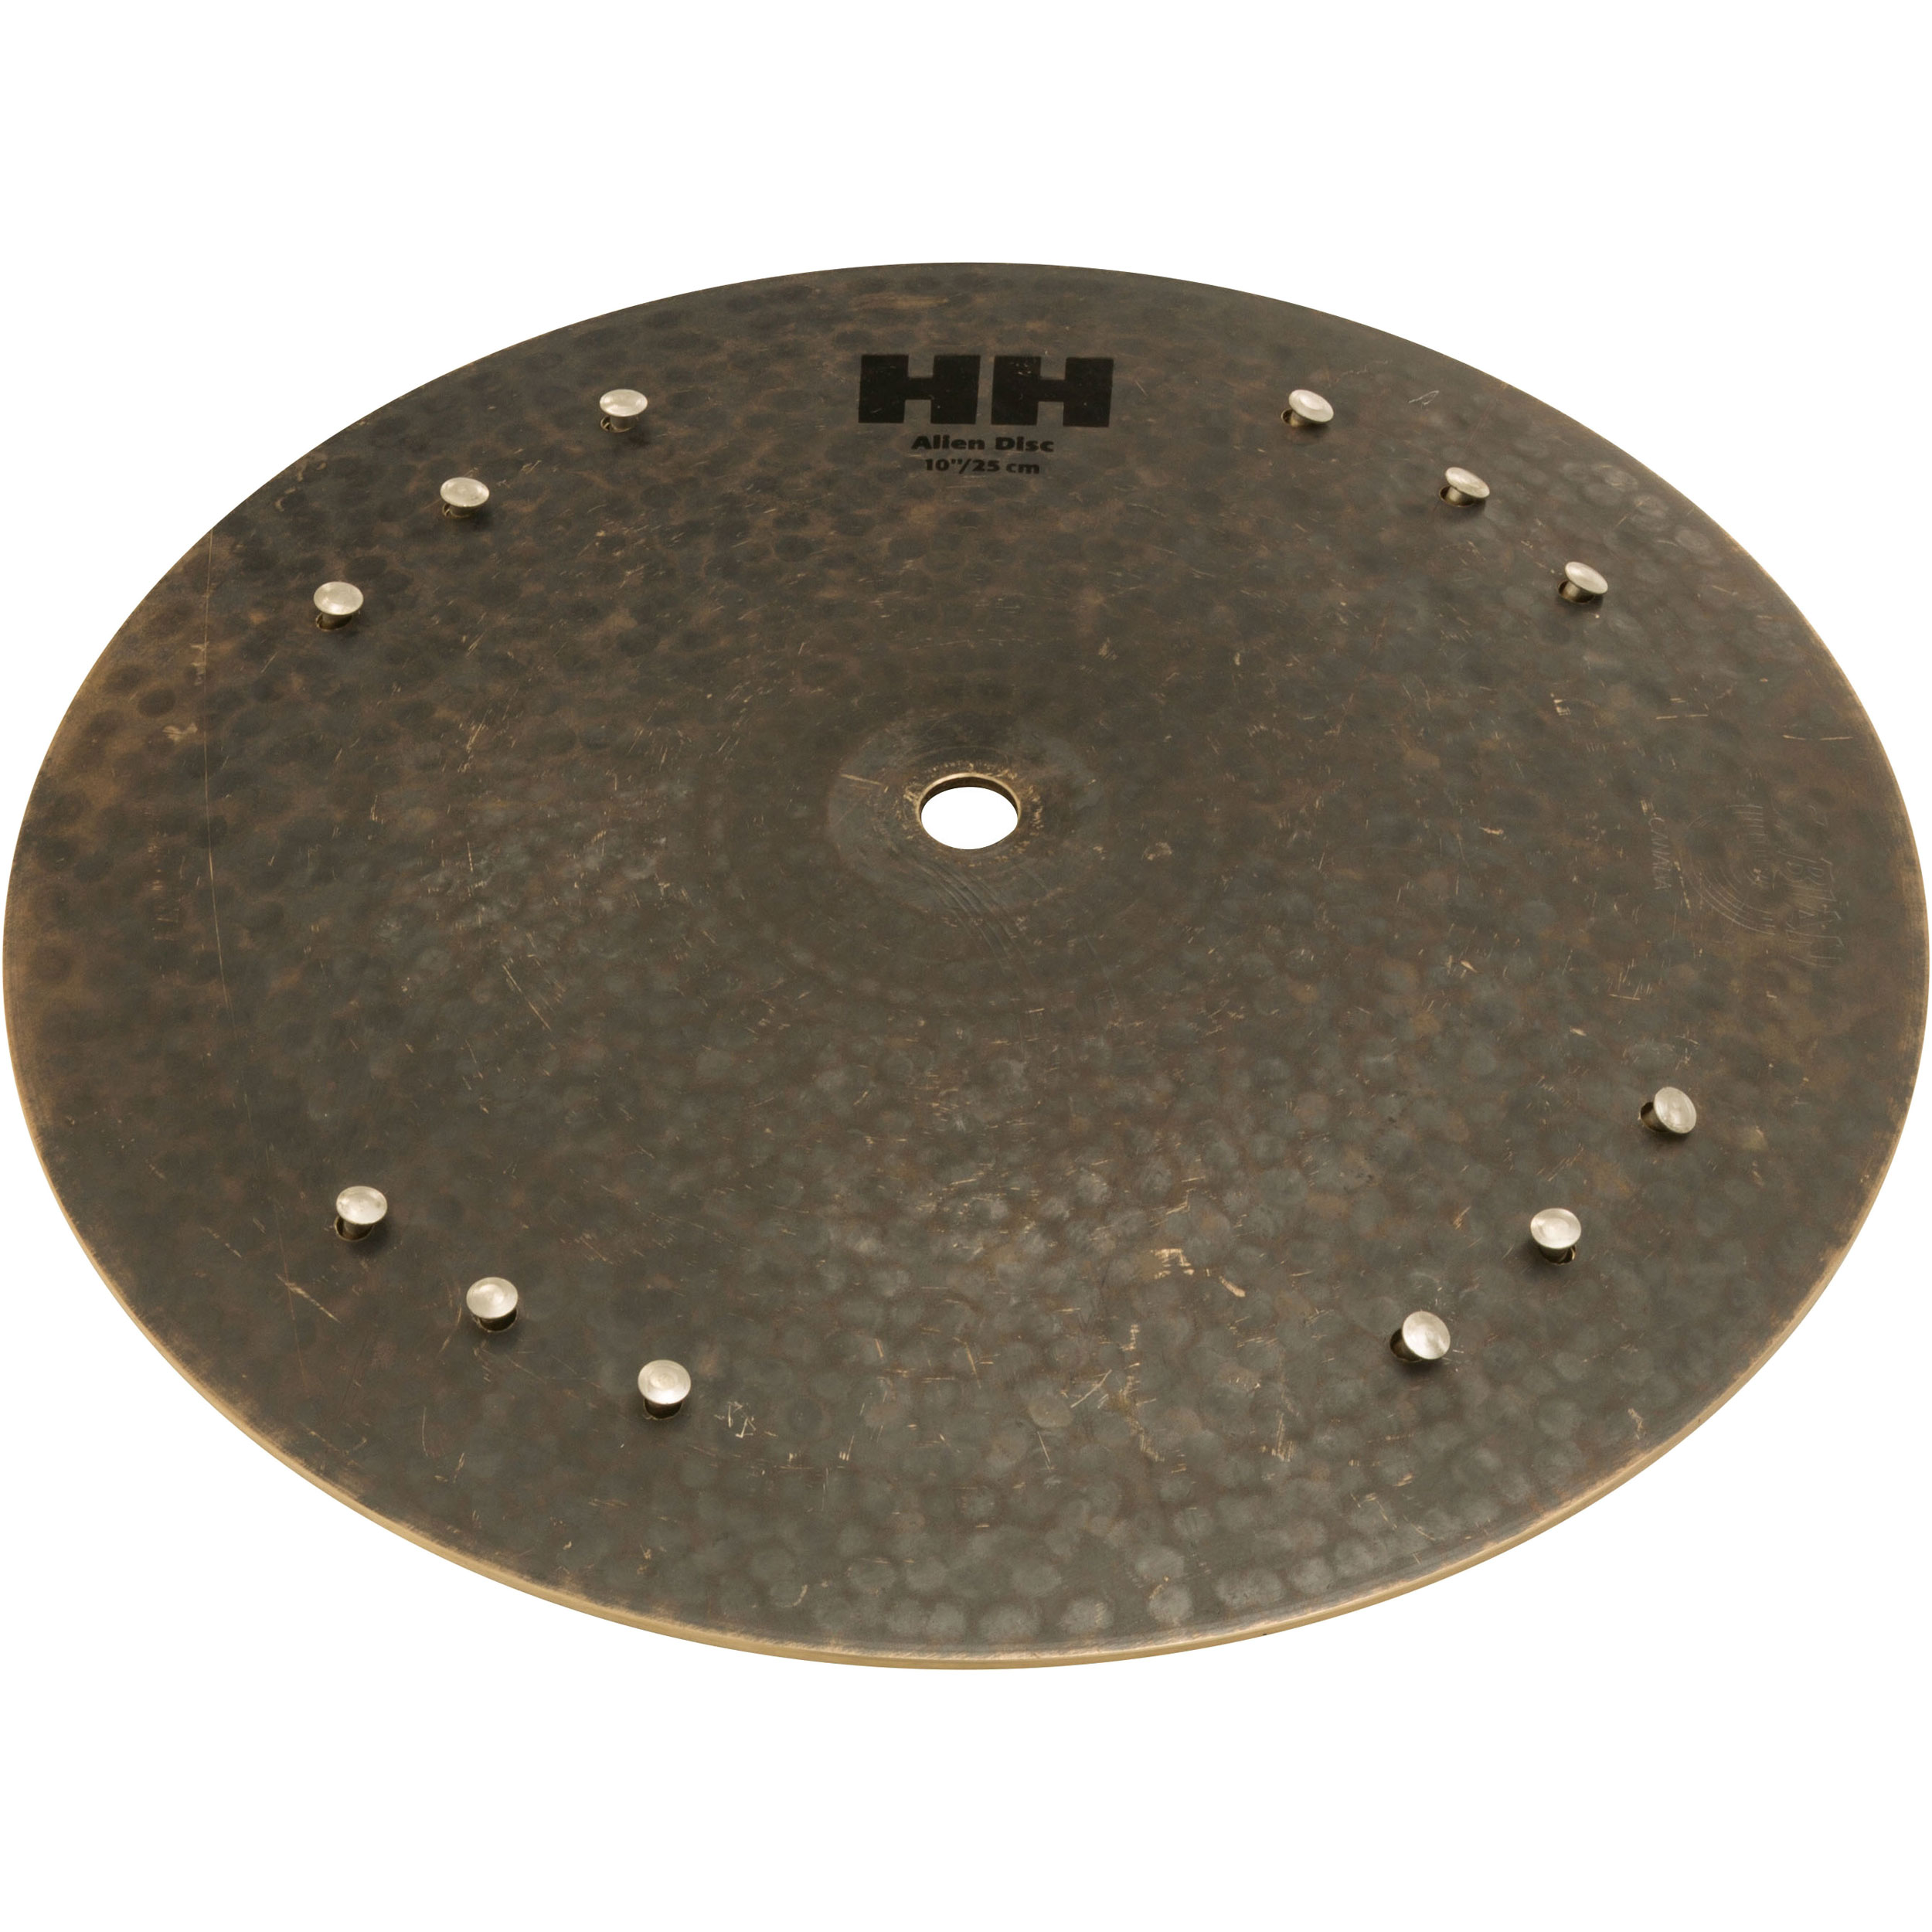 "Sabian 10"" Alien Disc with Natural Finish"